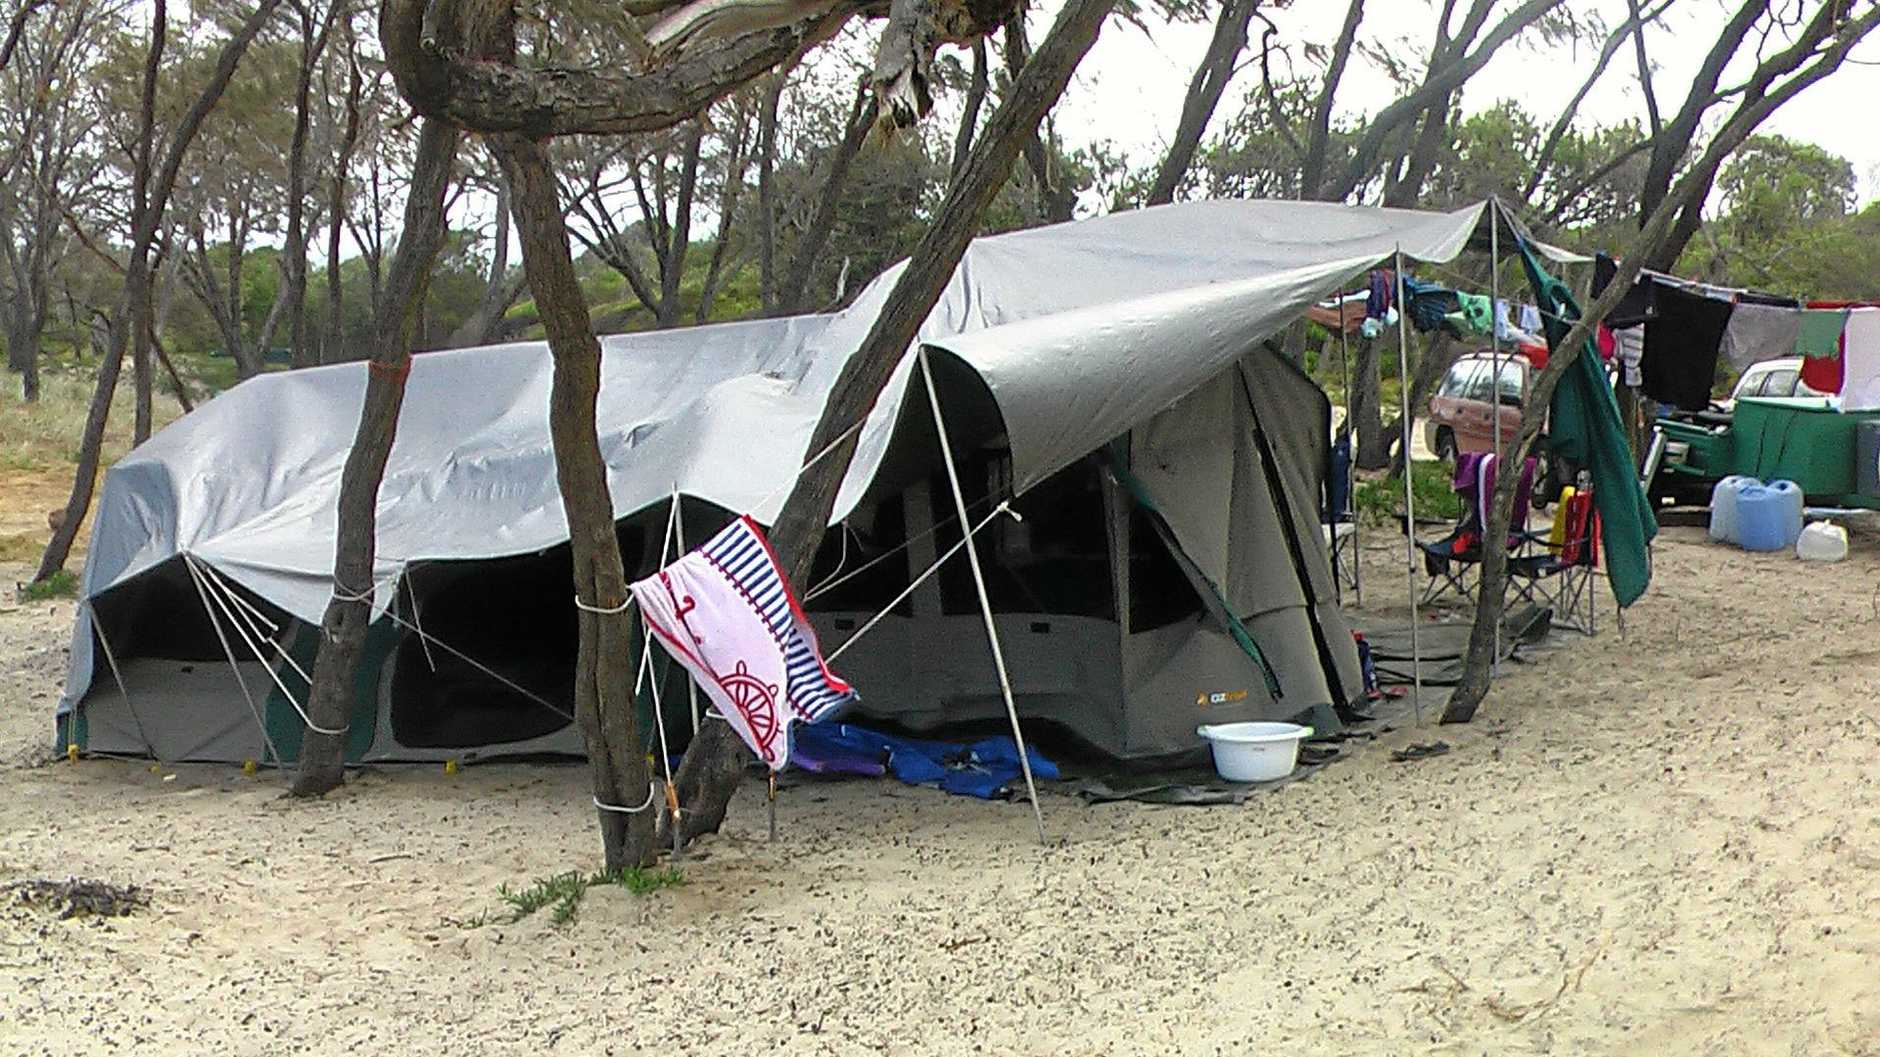 Campers in the Cooloola, Inskip and Rainbow Beach peninsulas are urged to follow weather reports to prepare ahead for incoming